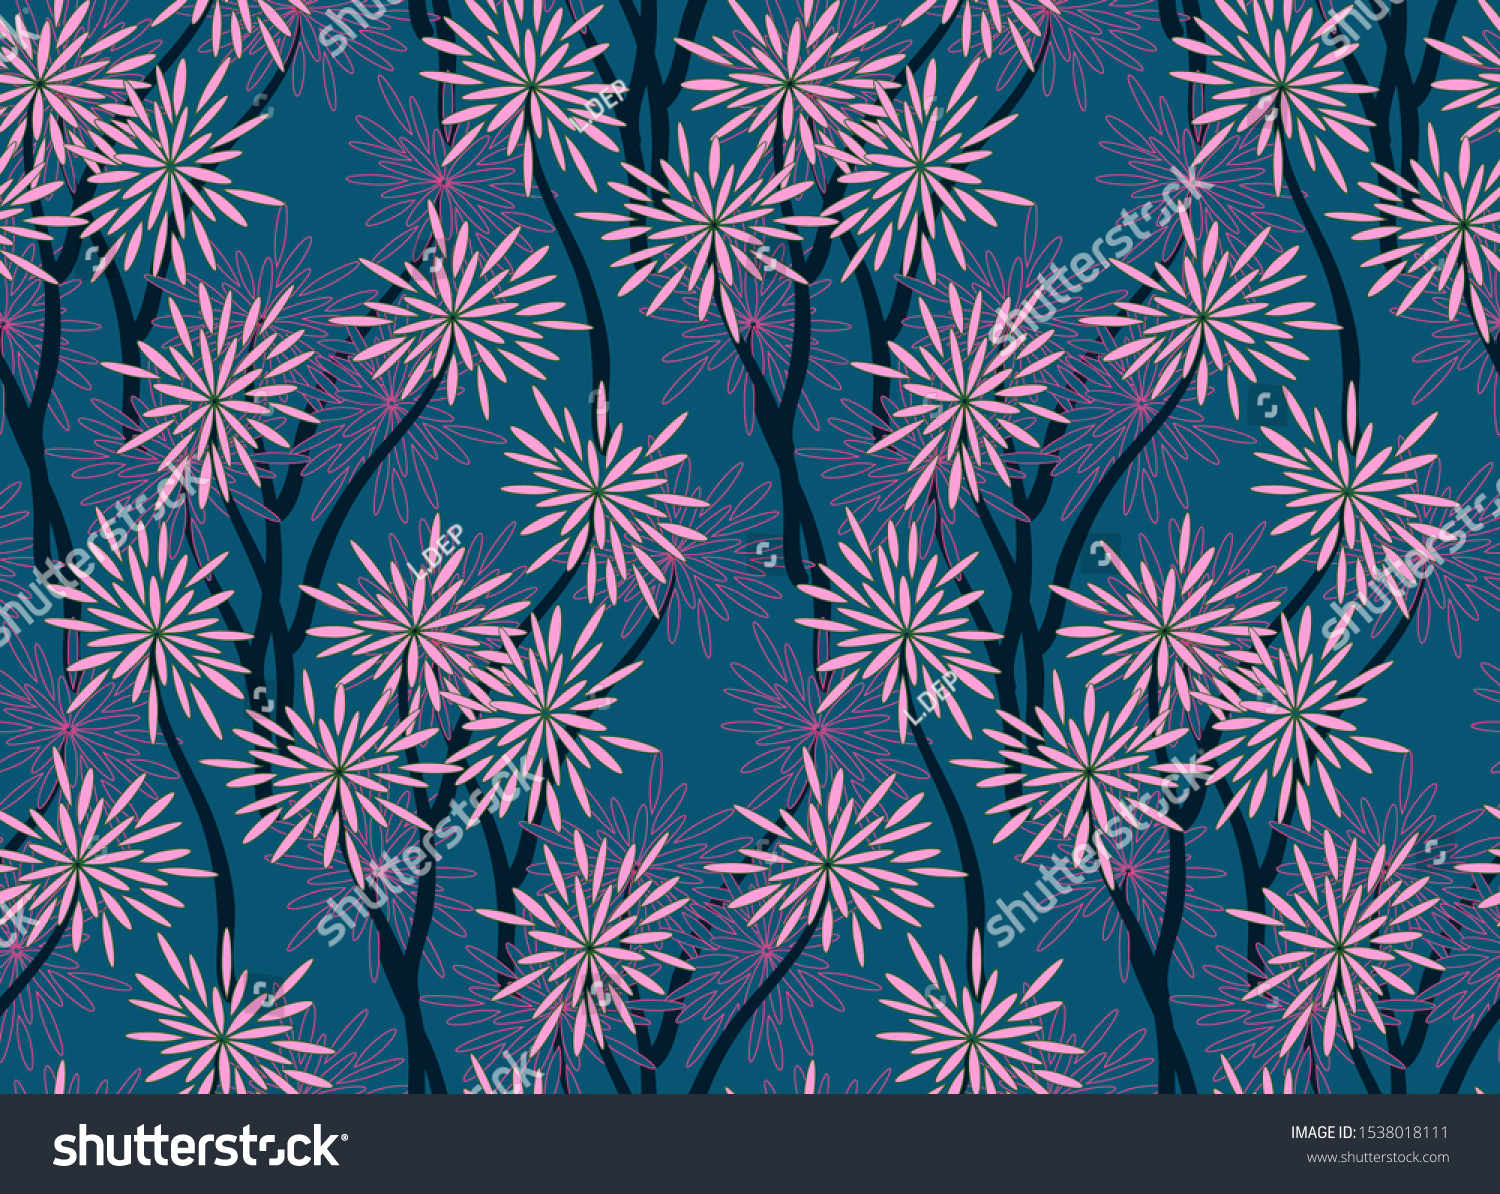 Retro Floral Wallpaper Asian Style Navy Stock Vector Royalty Free